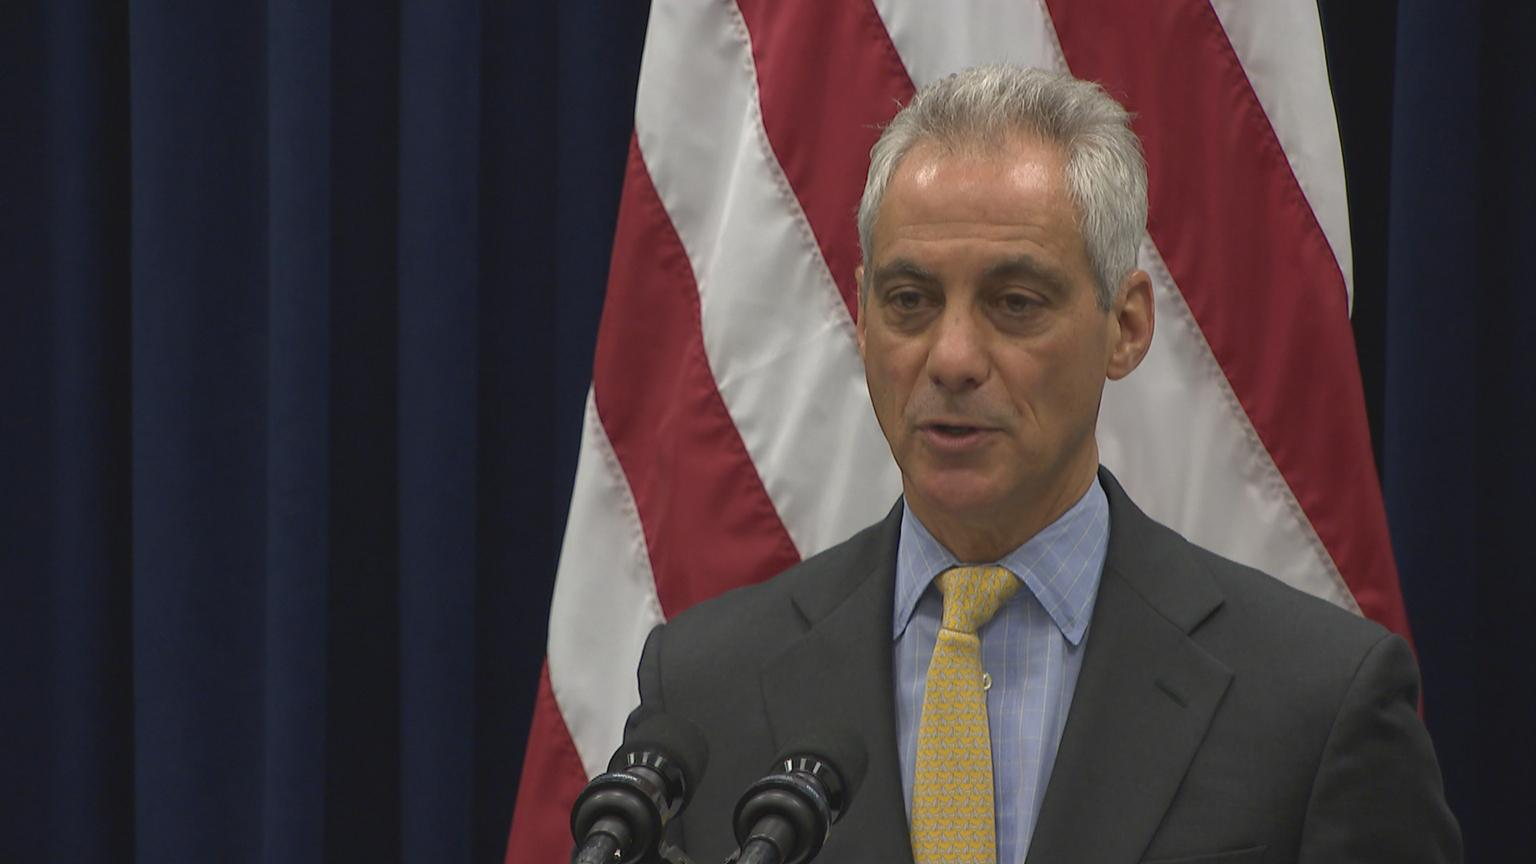 Chicago Mayor Rahm Emanuel speaks to the media on Wednesday, Oct. 31, 2018.